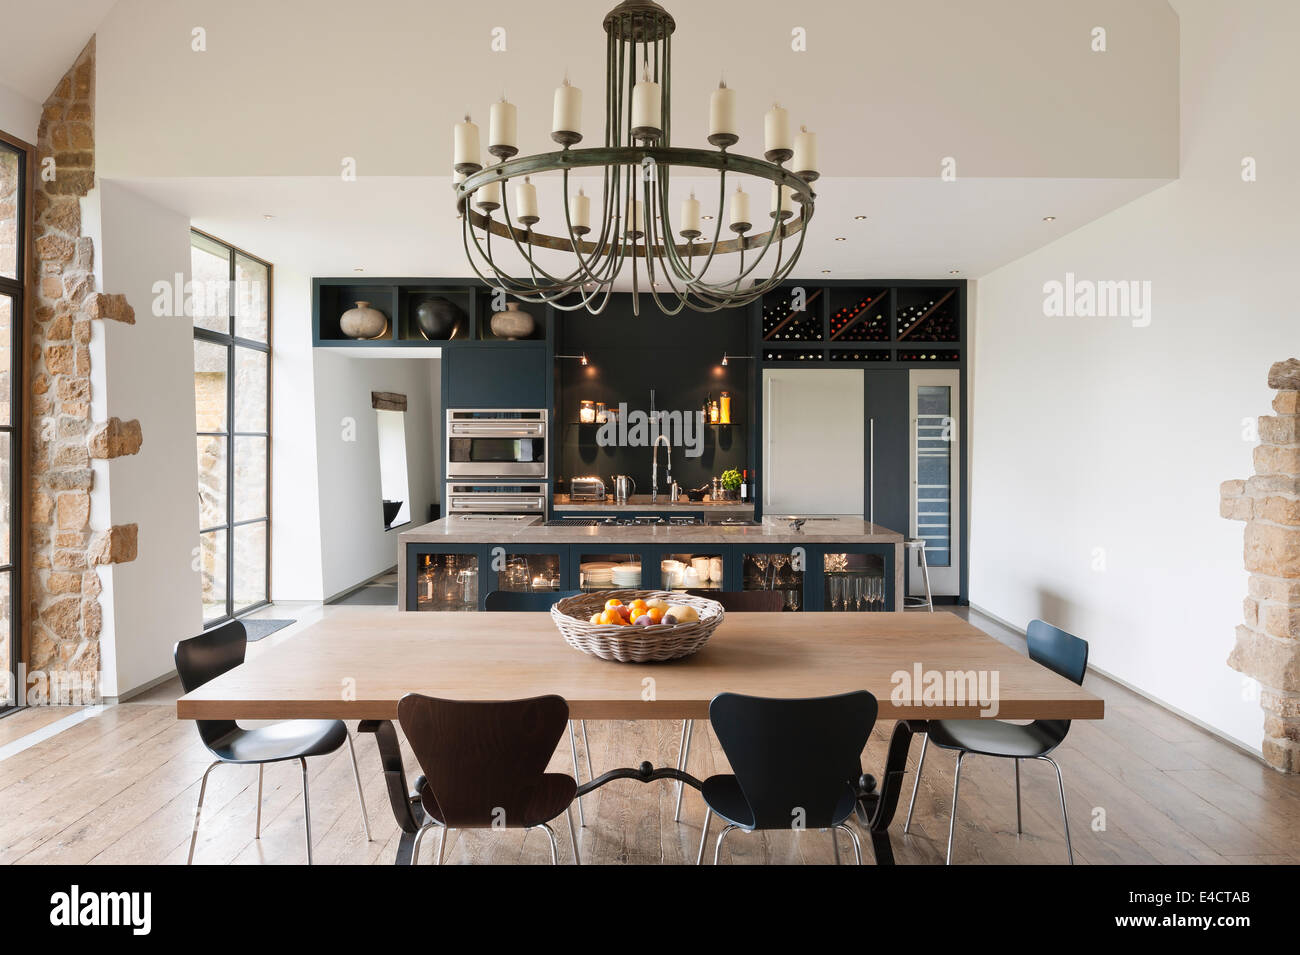 Kitchen Chandelier Lighting Above Kitchen Table Design Pictures Awesome Dining Room